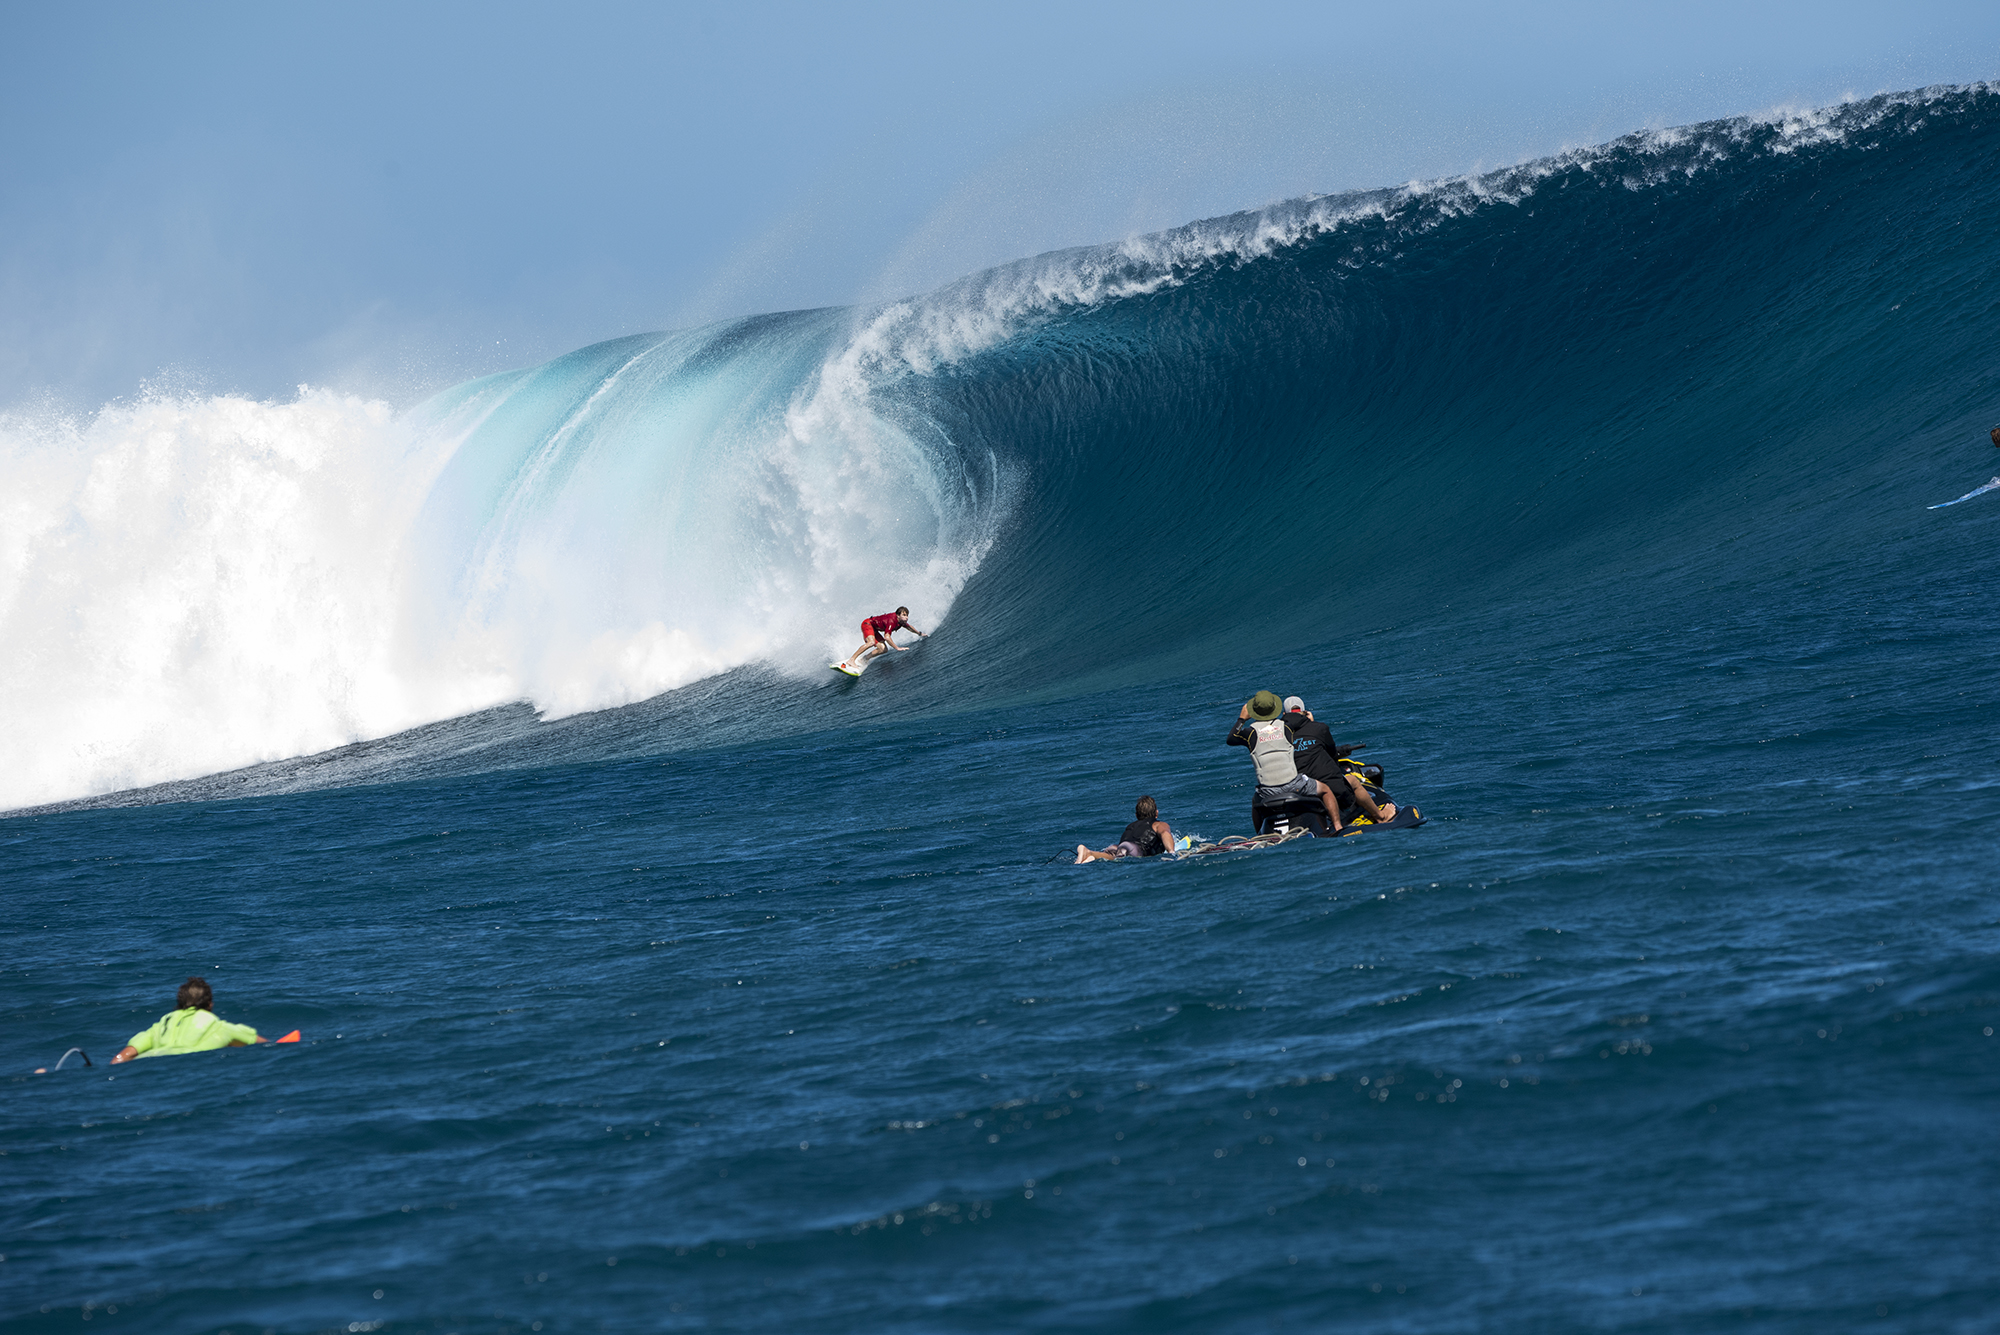 Mark Healy second wave